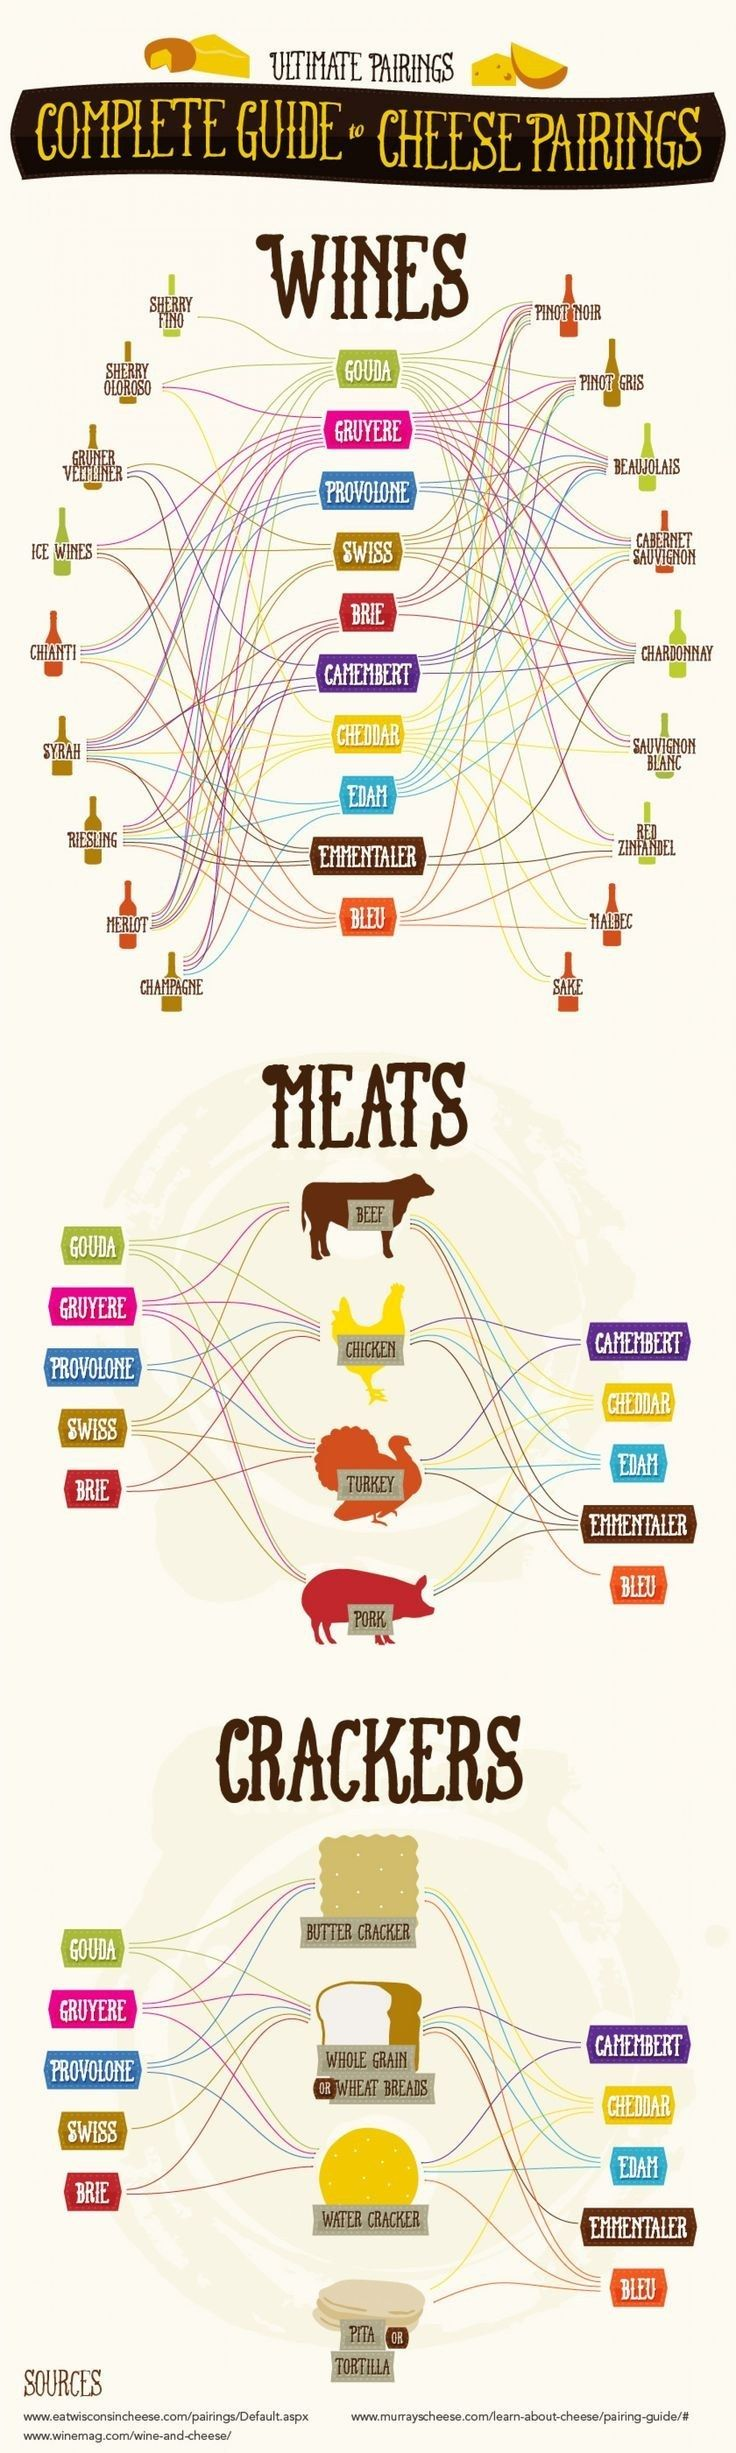 And this guide that will help you pair your cheese with your wine, your meats, and even your crackers! www.wine-tours.ch